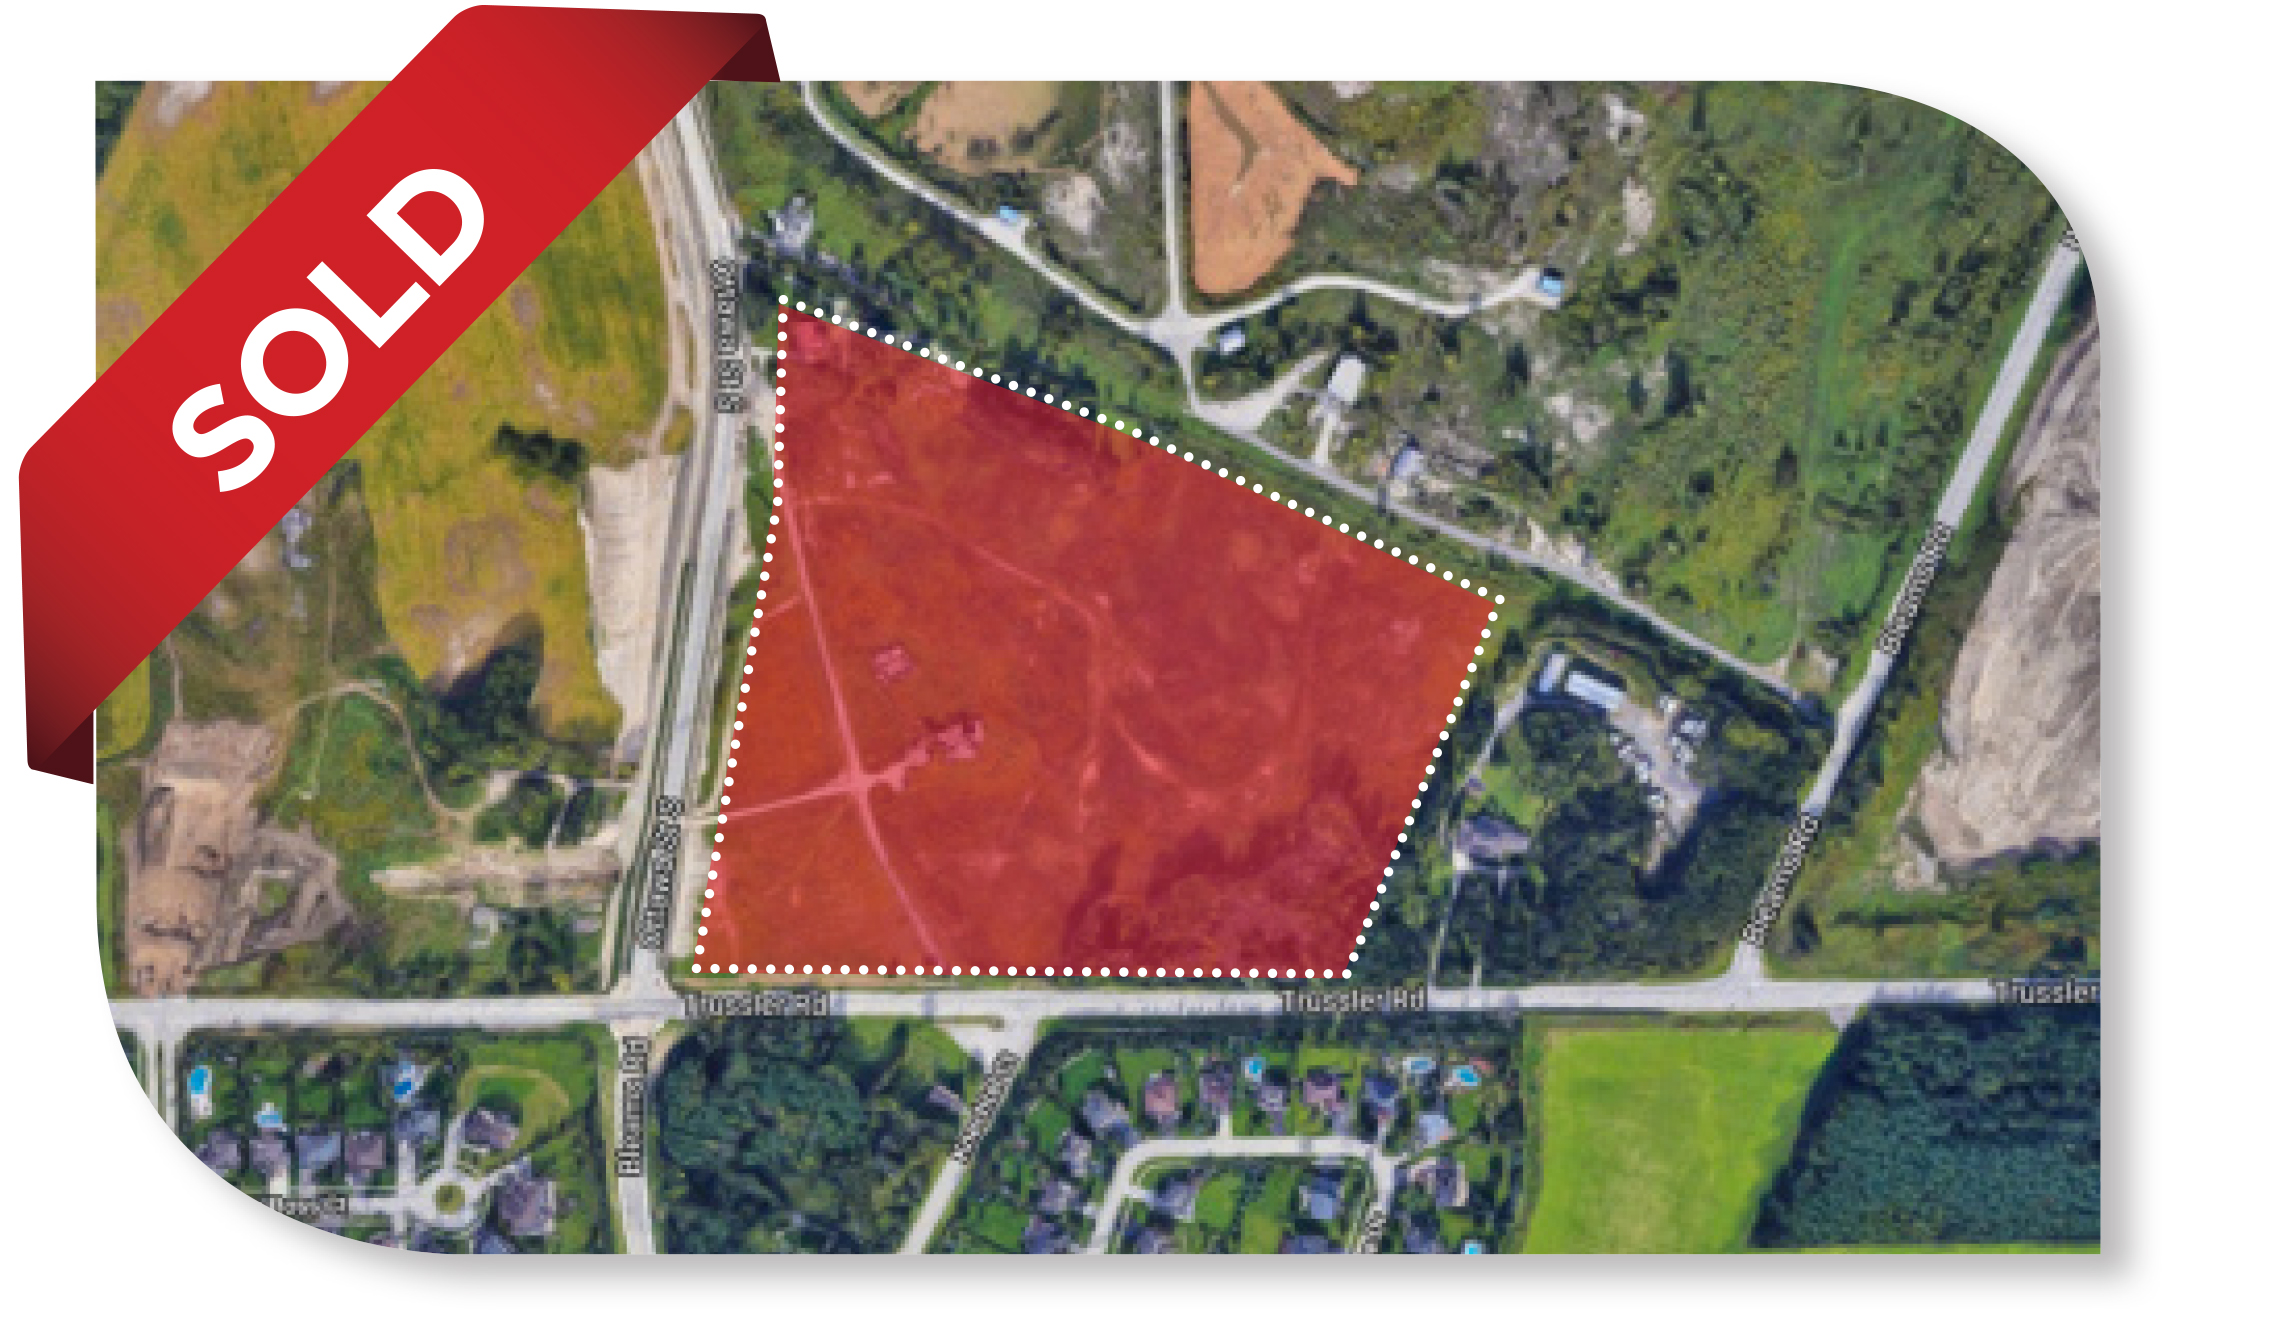 24.17 Acres of Residential Land